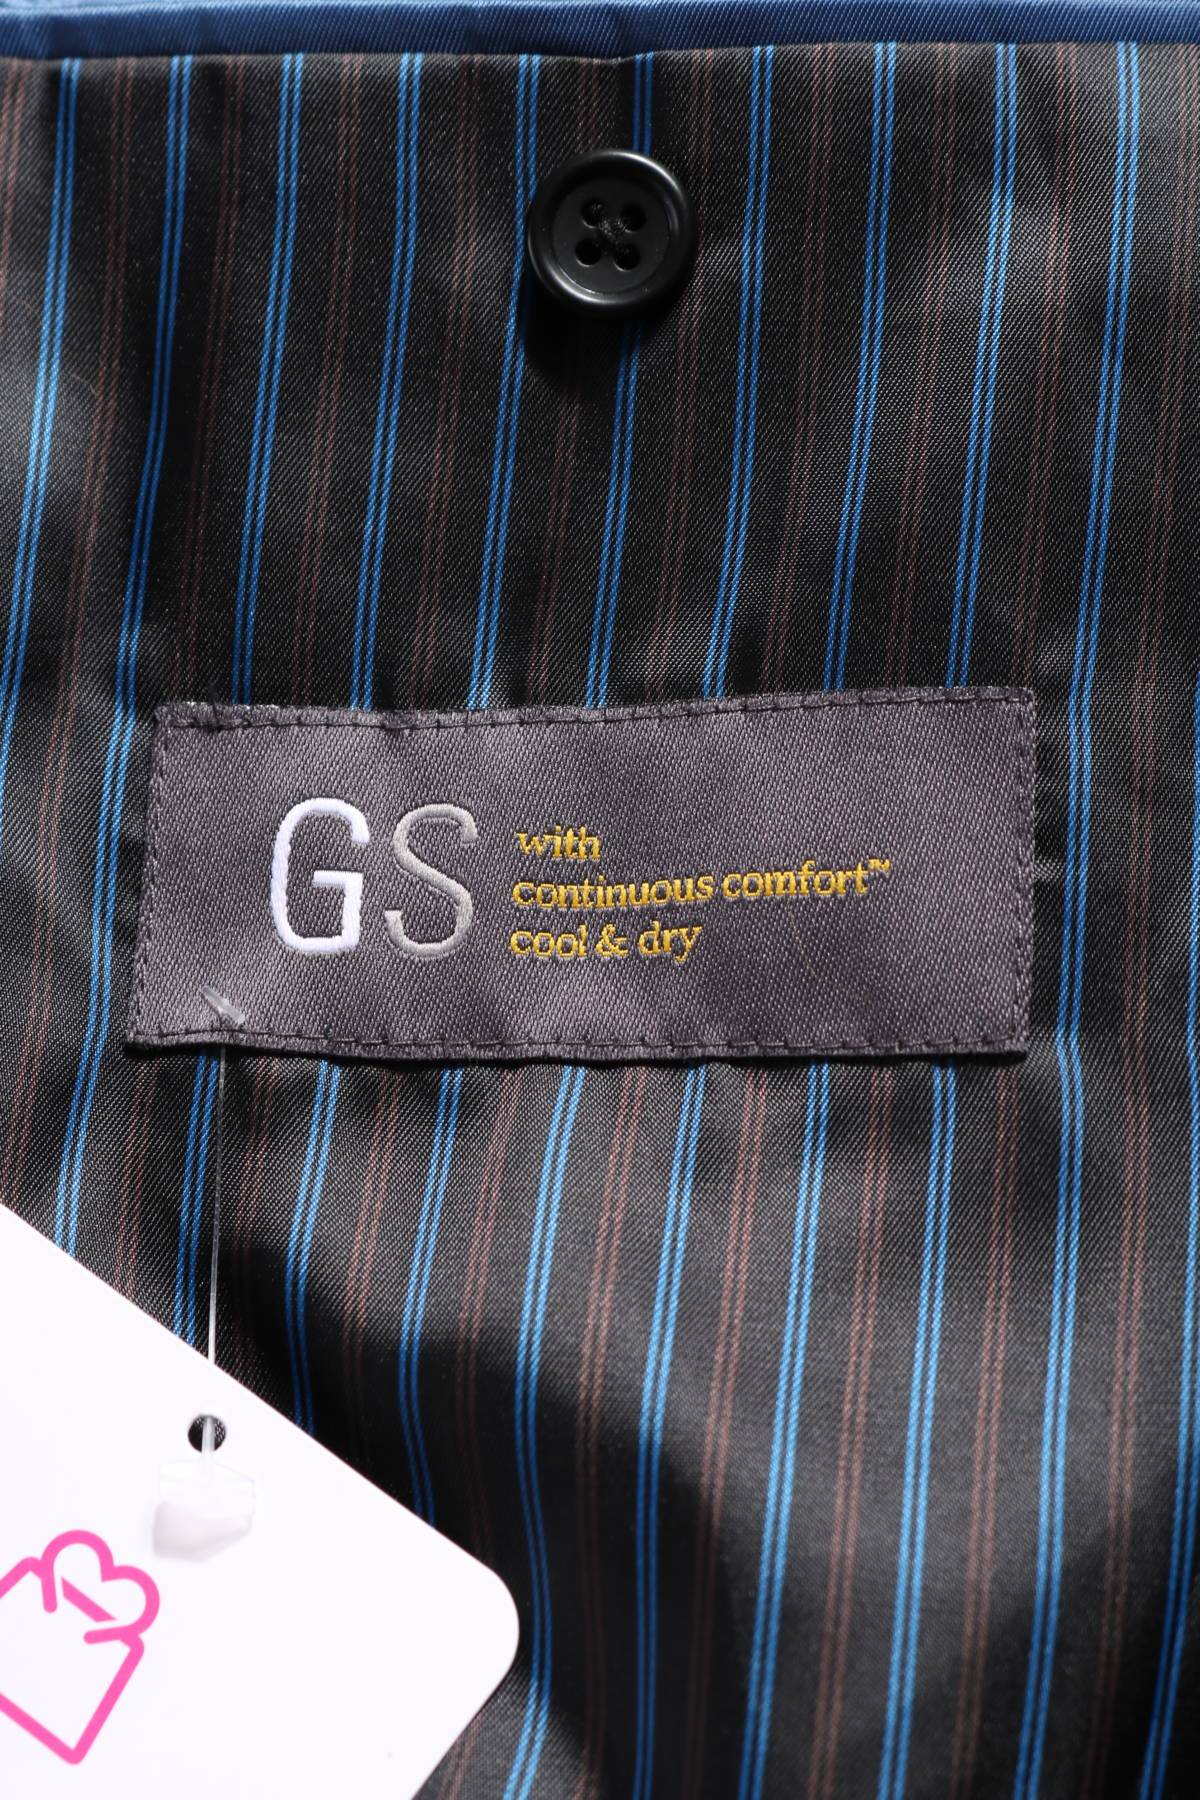 Сако GS with continuous comfort3